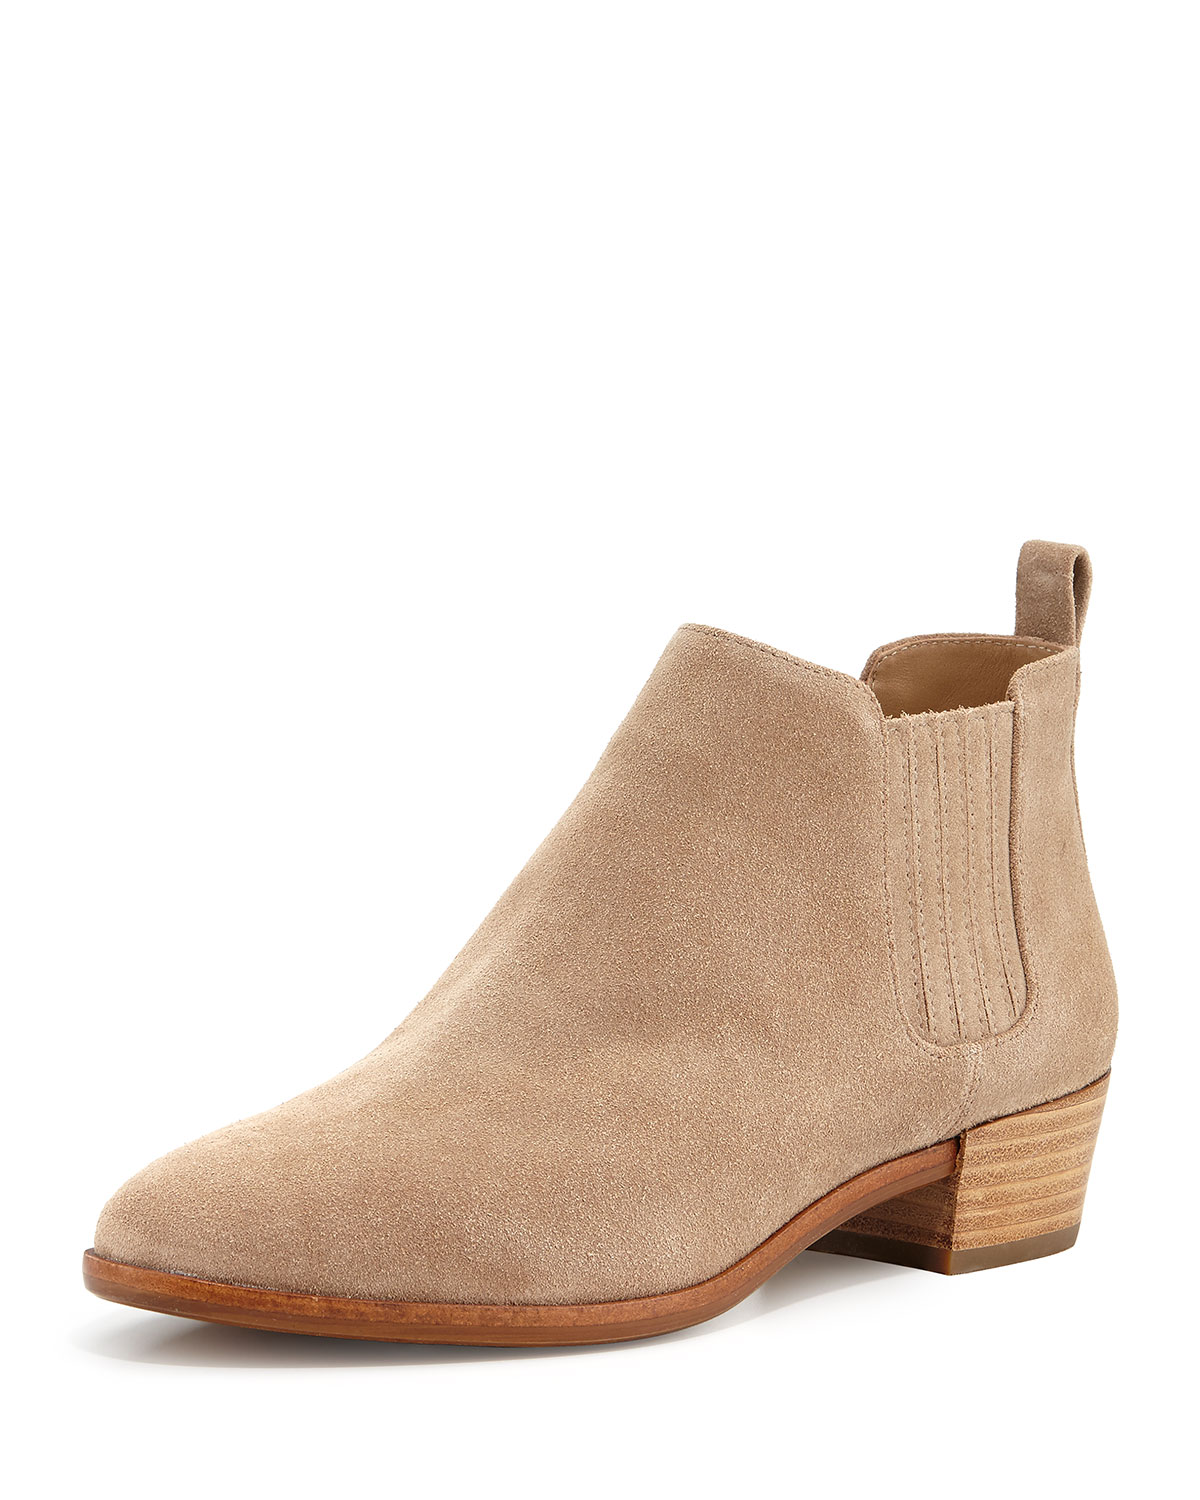 73f71911a743 MICHAEL Michael Kors Shaw Suede Flat Bootie